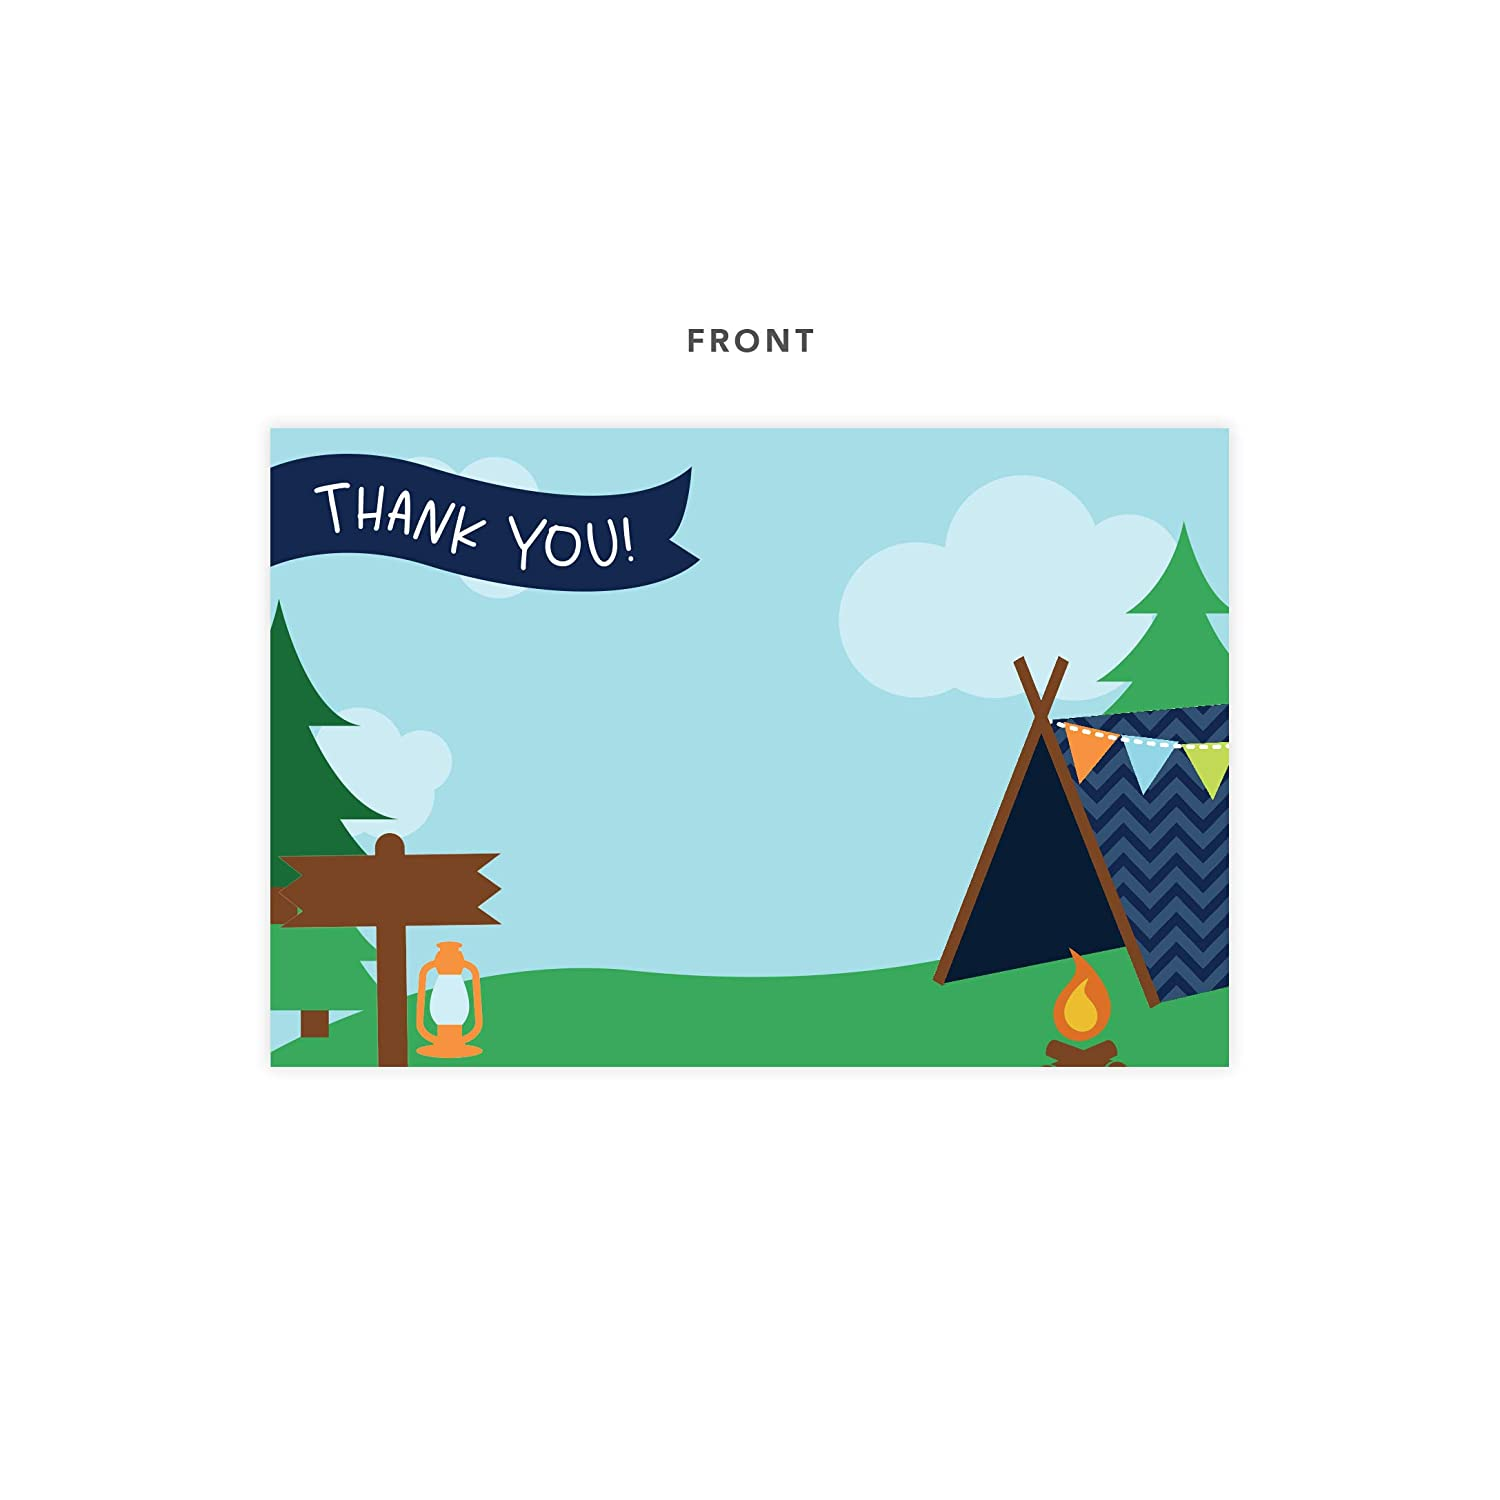 25ct 25 Count With Envelopes /& Seal Stickers Bulk Birthday Party Bridal Blank Graduation Kids Children Boy Girl Baby Shower Camping Thank You Cards